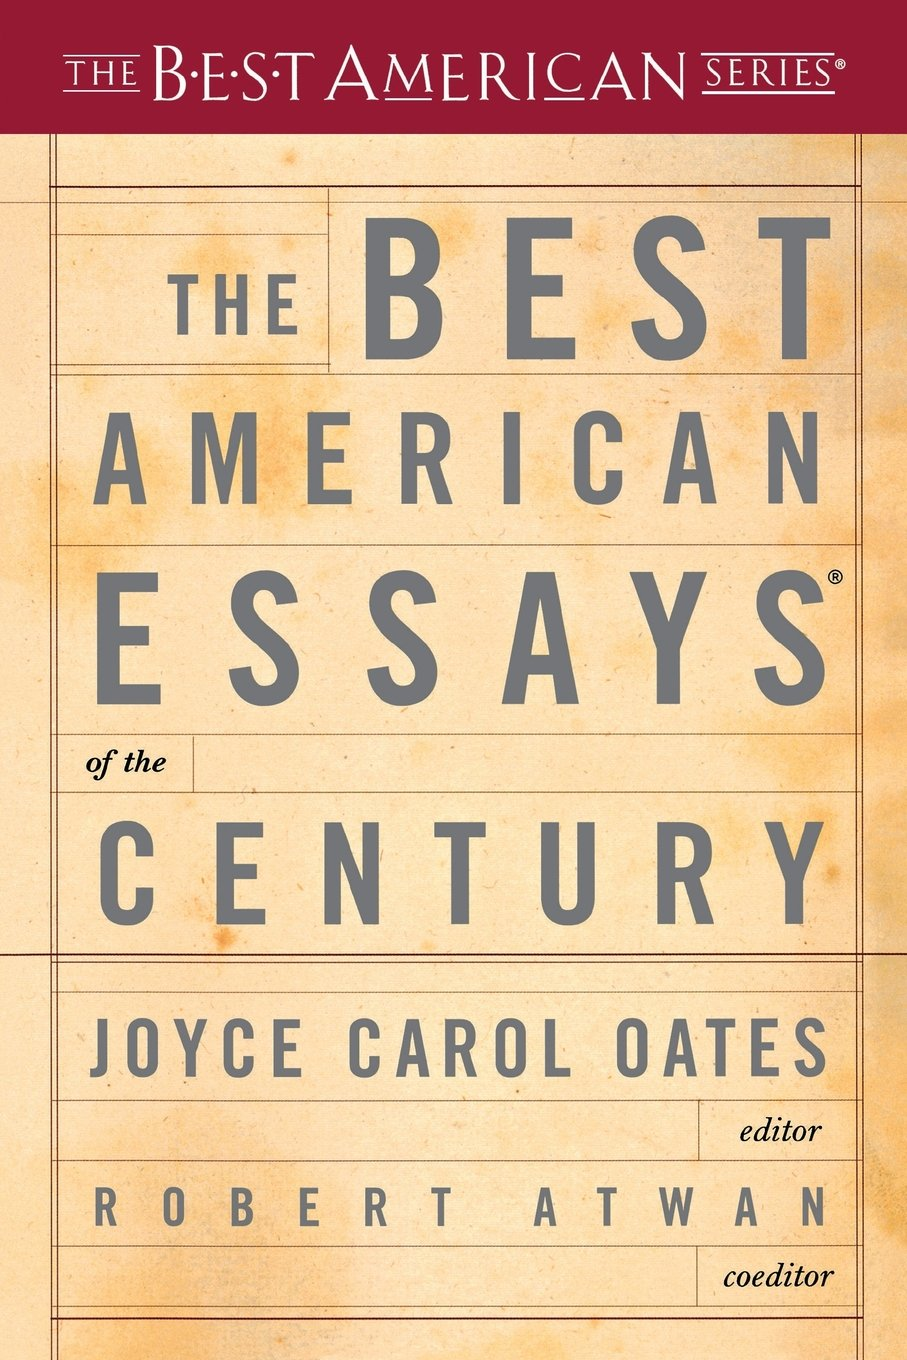 002 The Best American Essays Essay Example Wonderful 2018 Pdf 2017 Table Of Contents 2015 Free Full